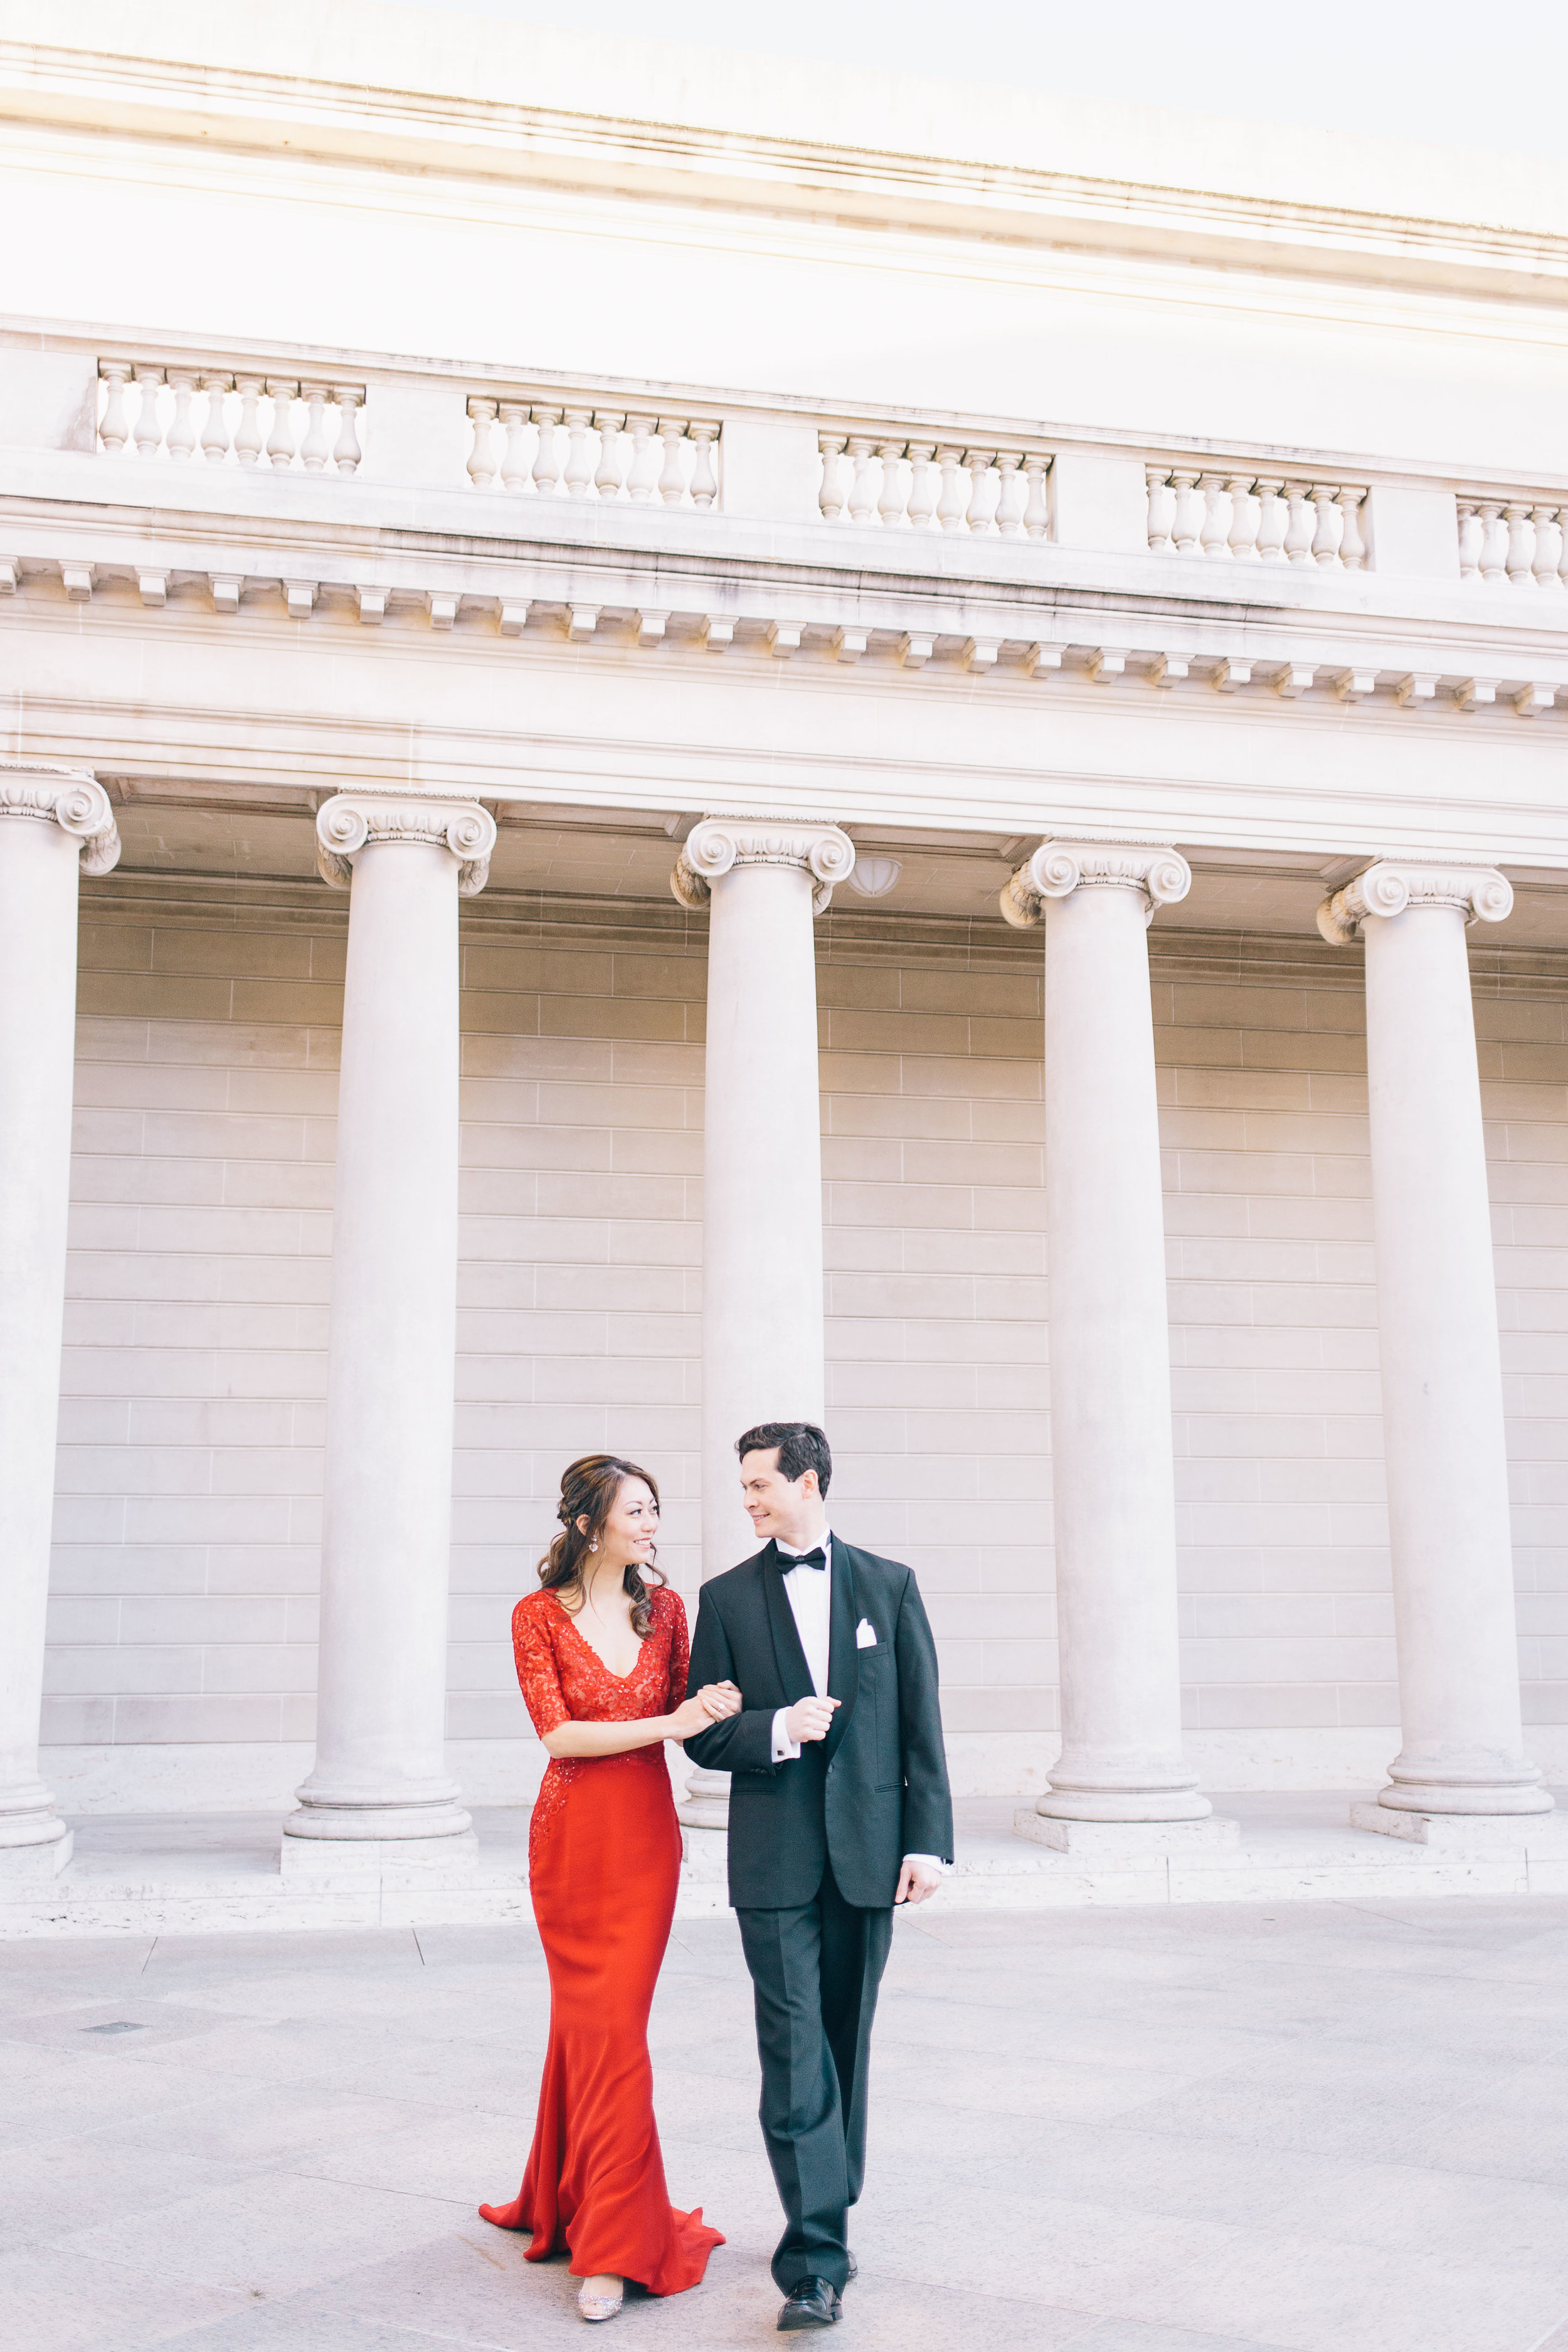 Legion of Honor Engagement Photos by JBJ Pictures - Best Locations for Engagement Photos in SF (5).jpg